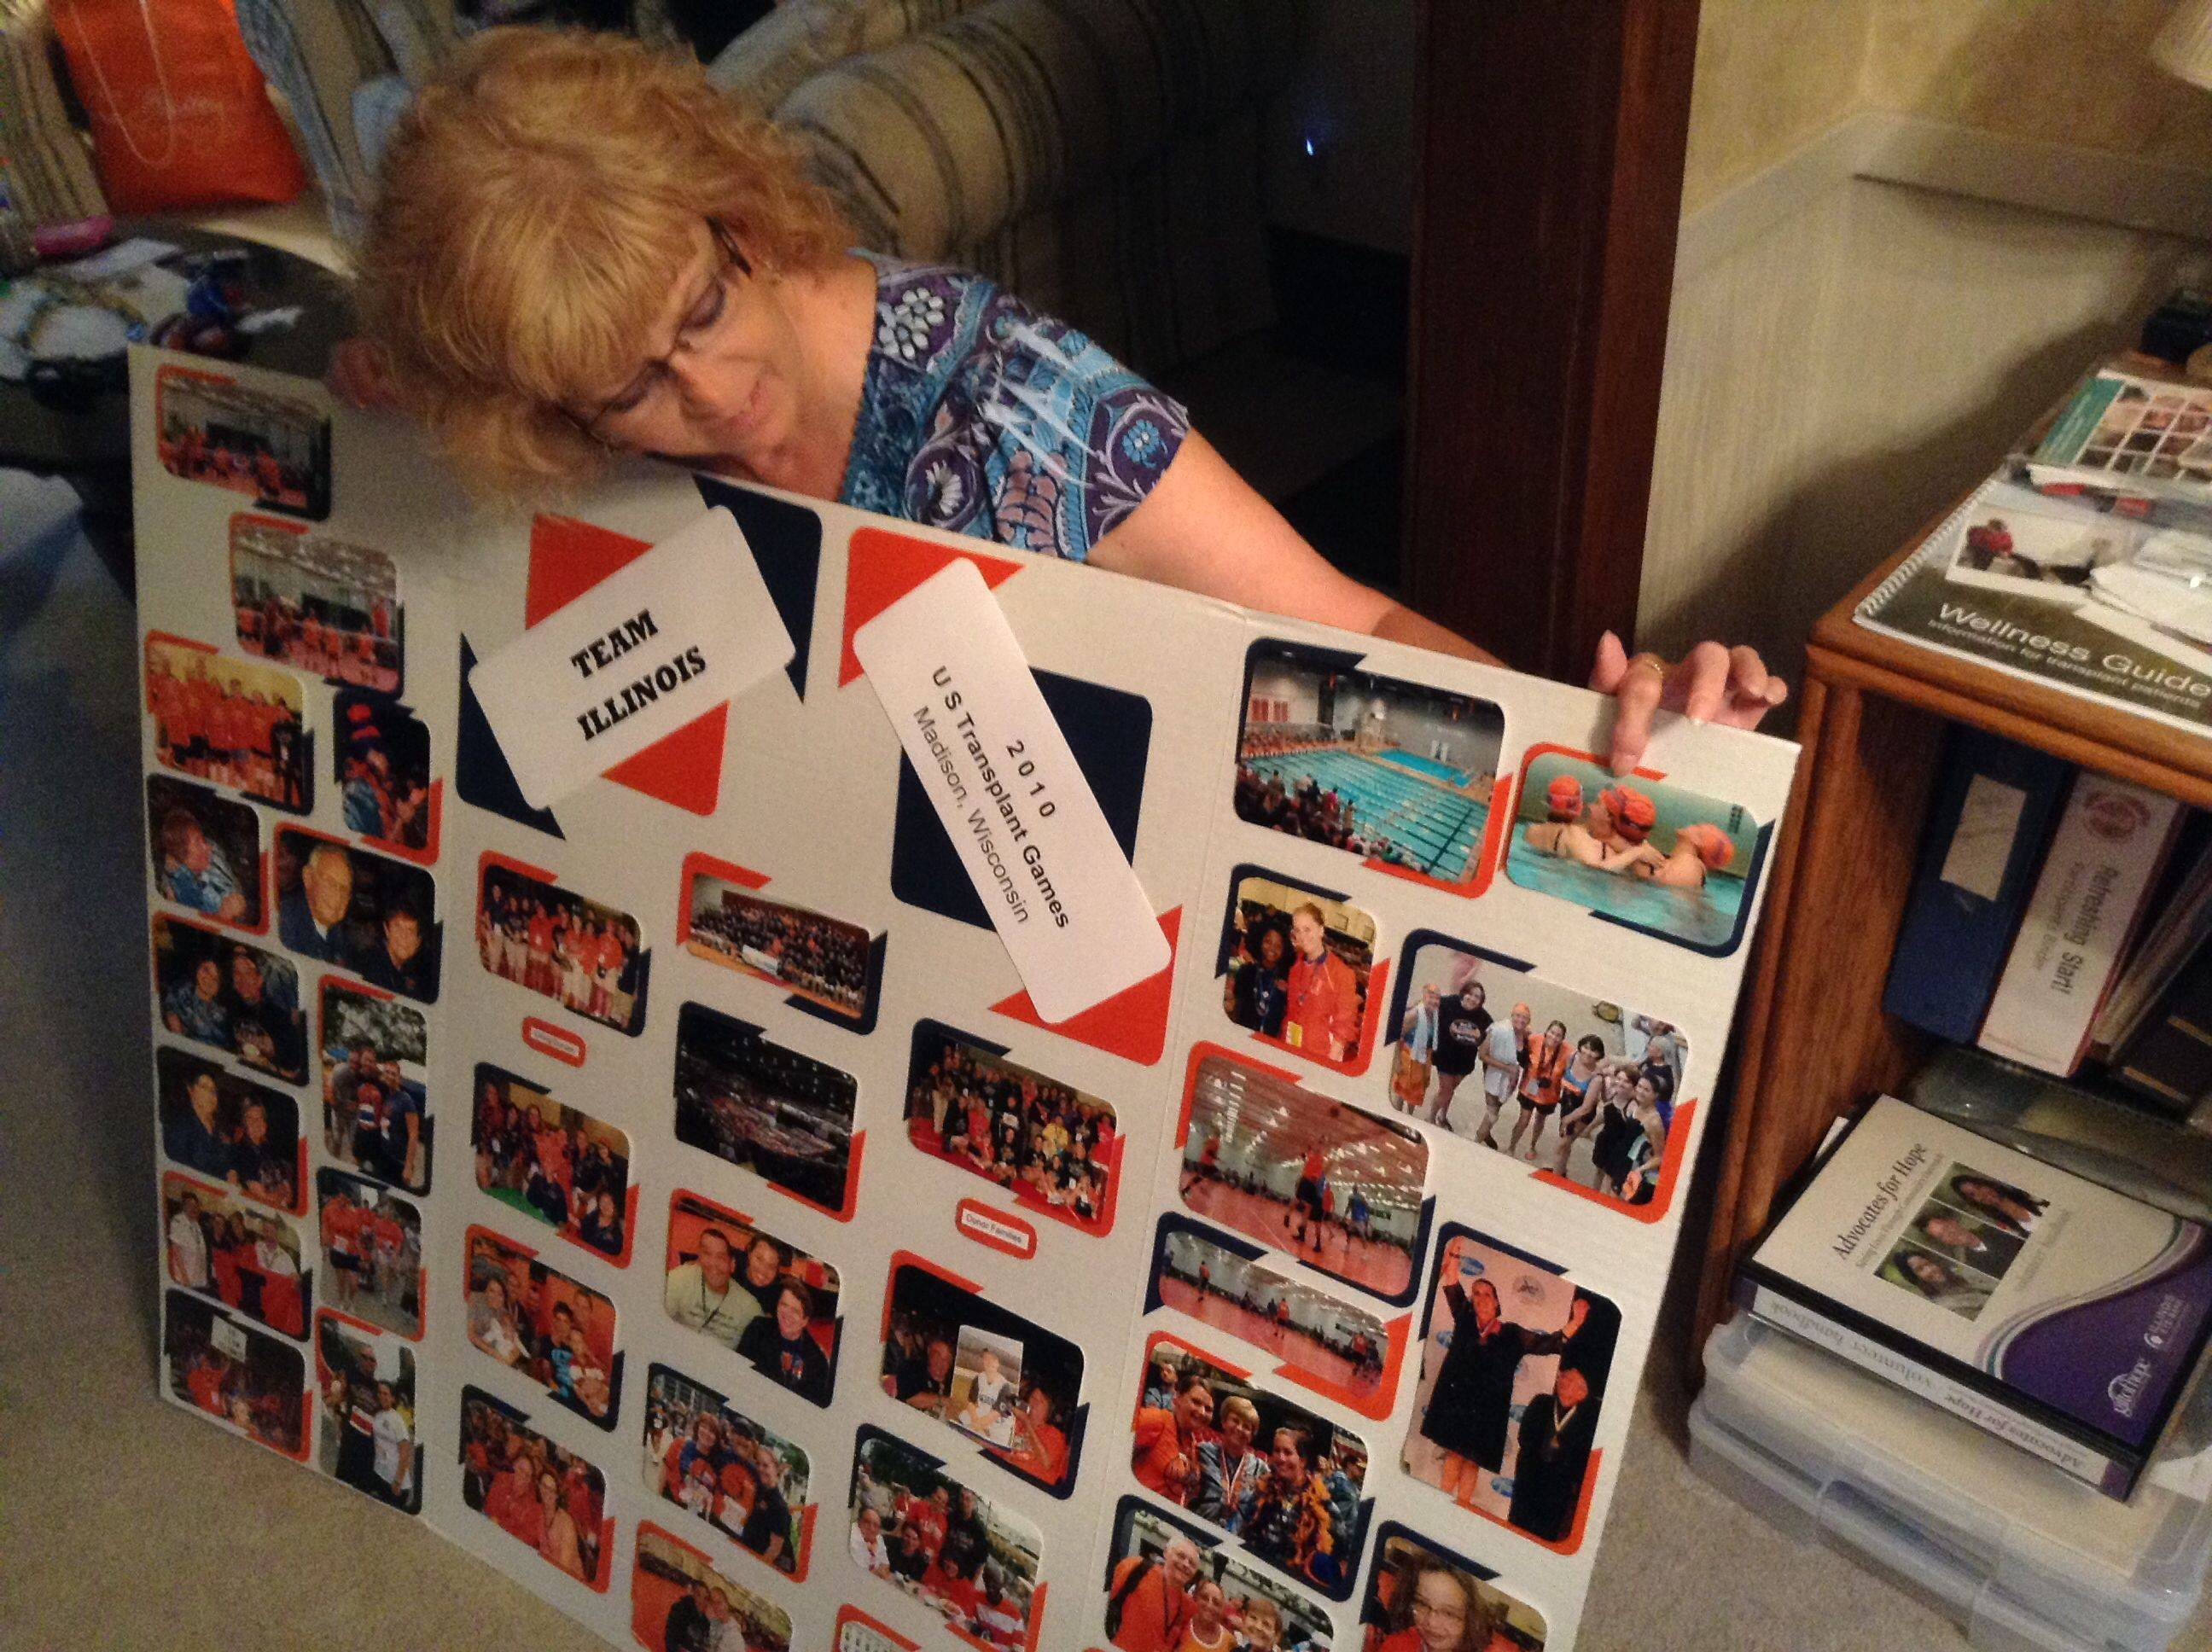 This display is part of the presentation Donna Stout has made to thousands of school students and others to promote organ donation. The Batavia wife and mother received a lifesaving transplanted heart in 2007.